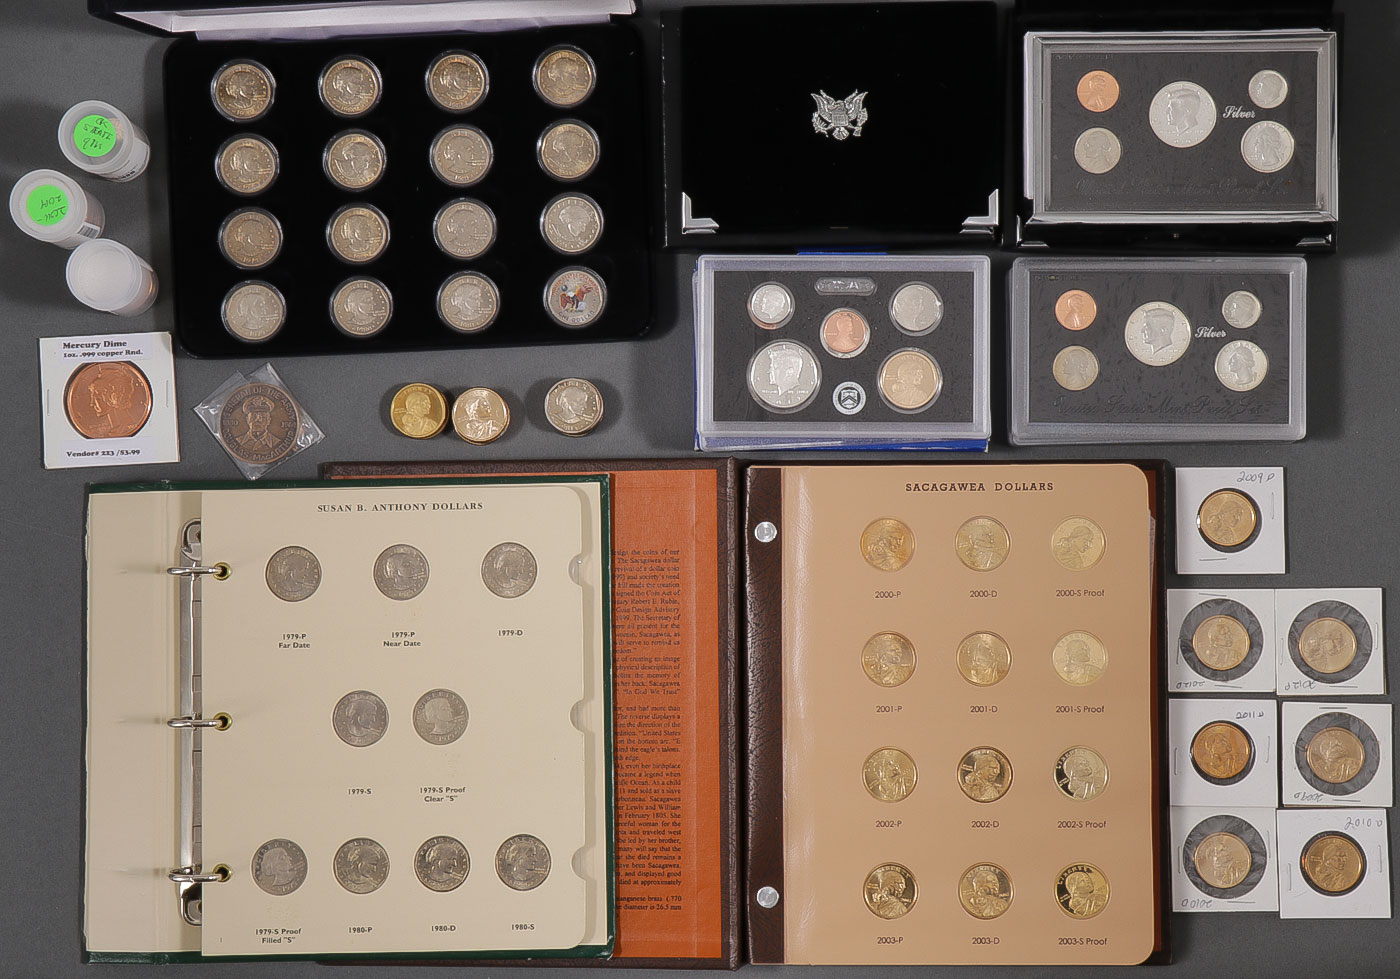 Lot 479 - U.S. PROOF SETS AND DOLLAR COINS